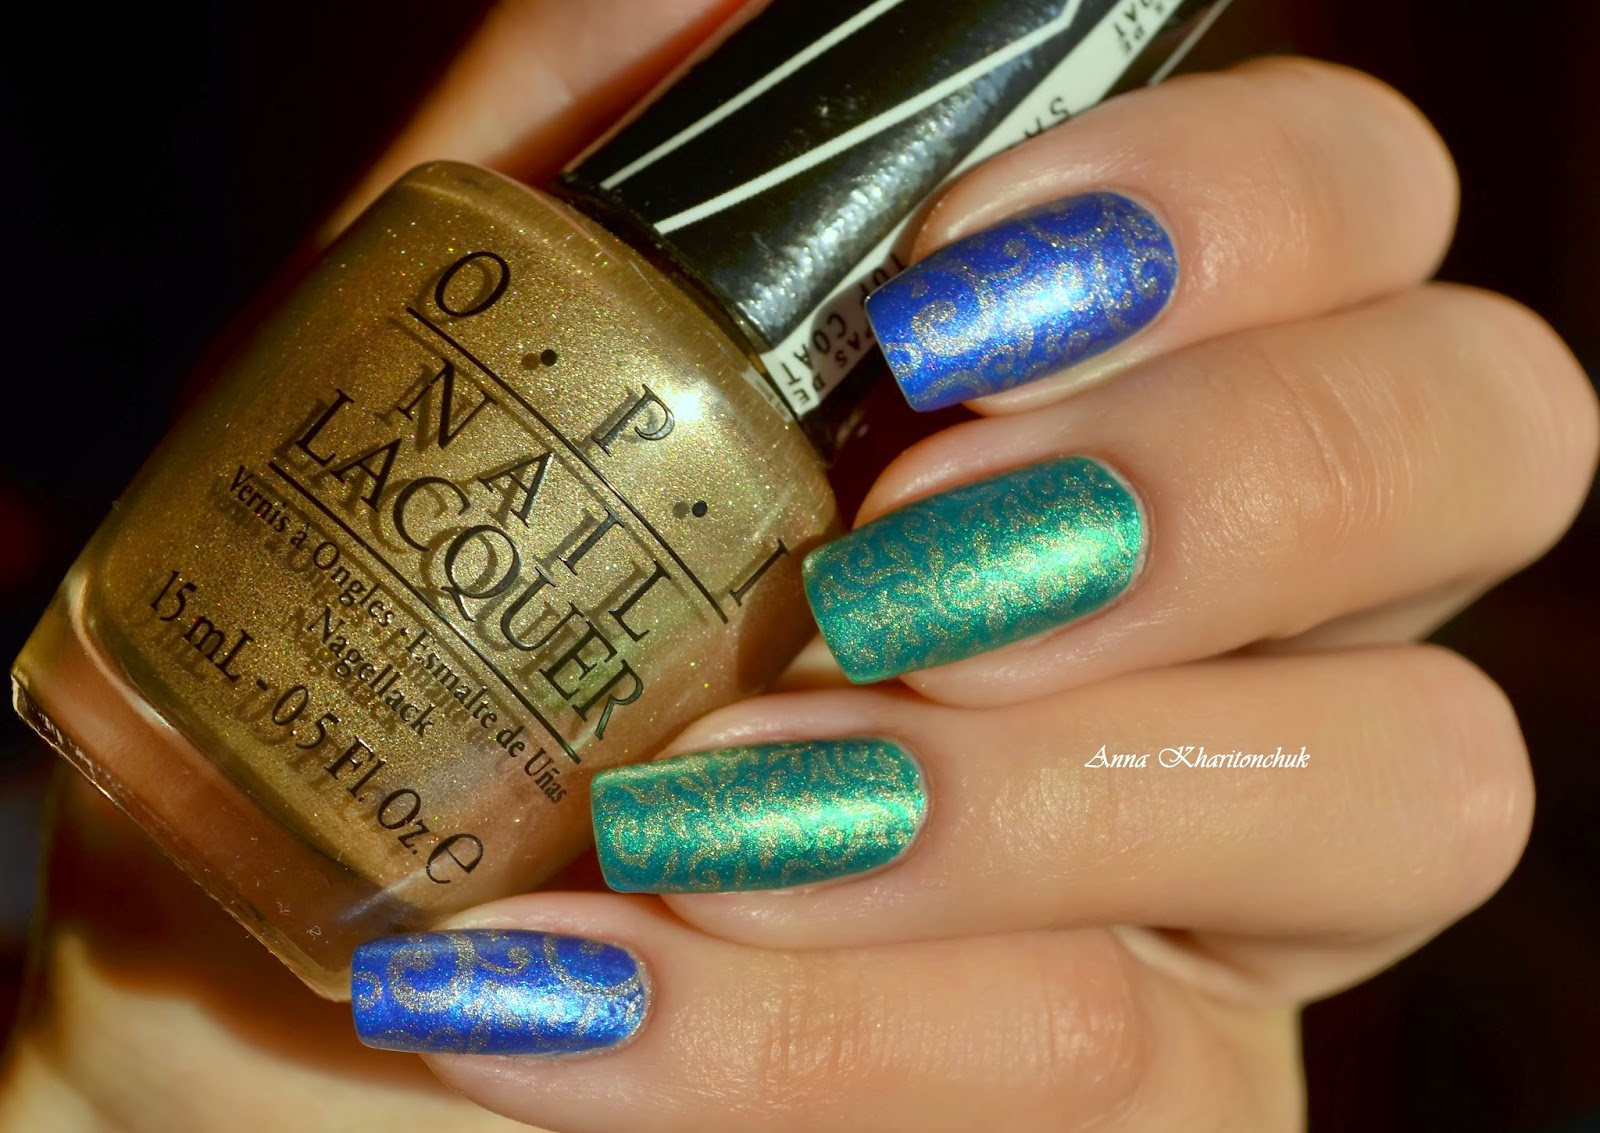 Дуэт EL Corazon Matte&Shine Effect m&s-161 и EL Corazon Matte&Shine Effect m&s-163 + стемпинг